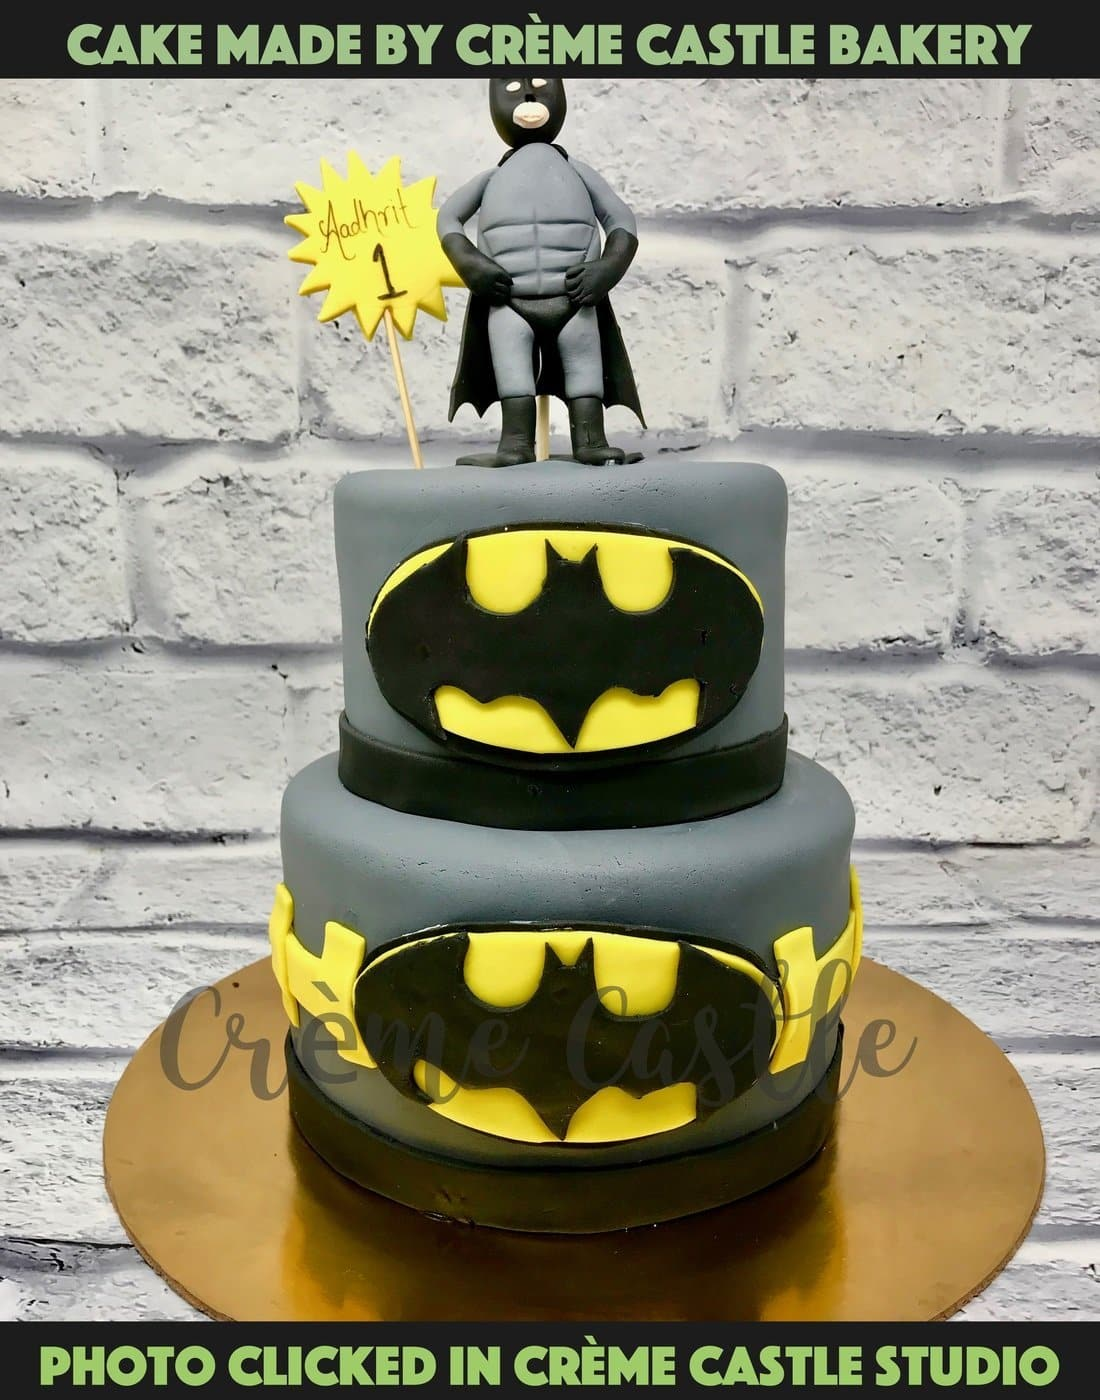 A fondant covered two tier cake in the theme of formidable Batman with logo on the edge and a handcrafted figure of Batman at the top